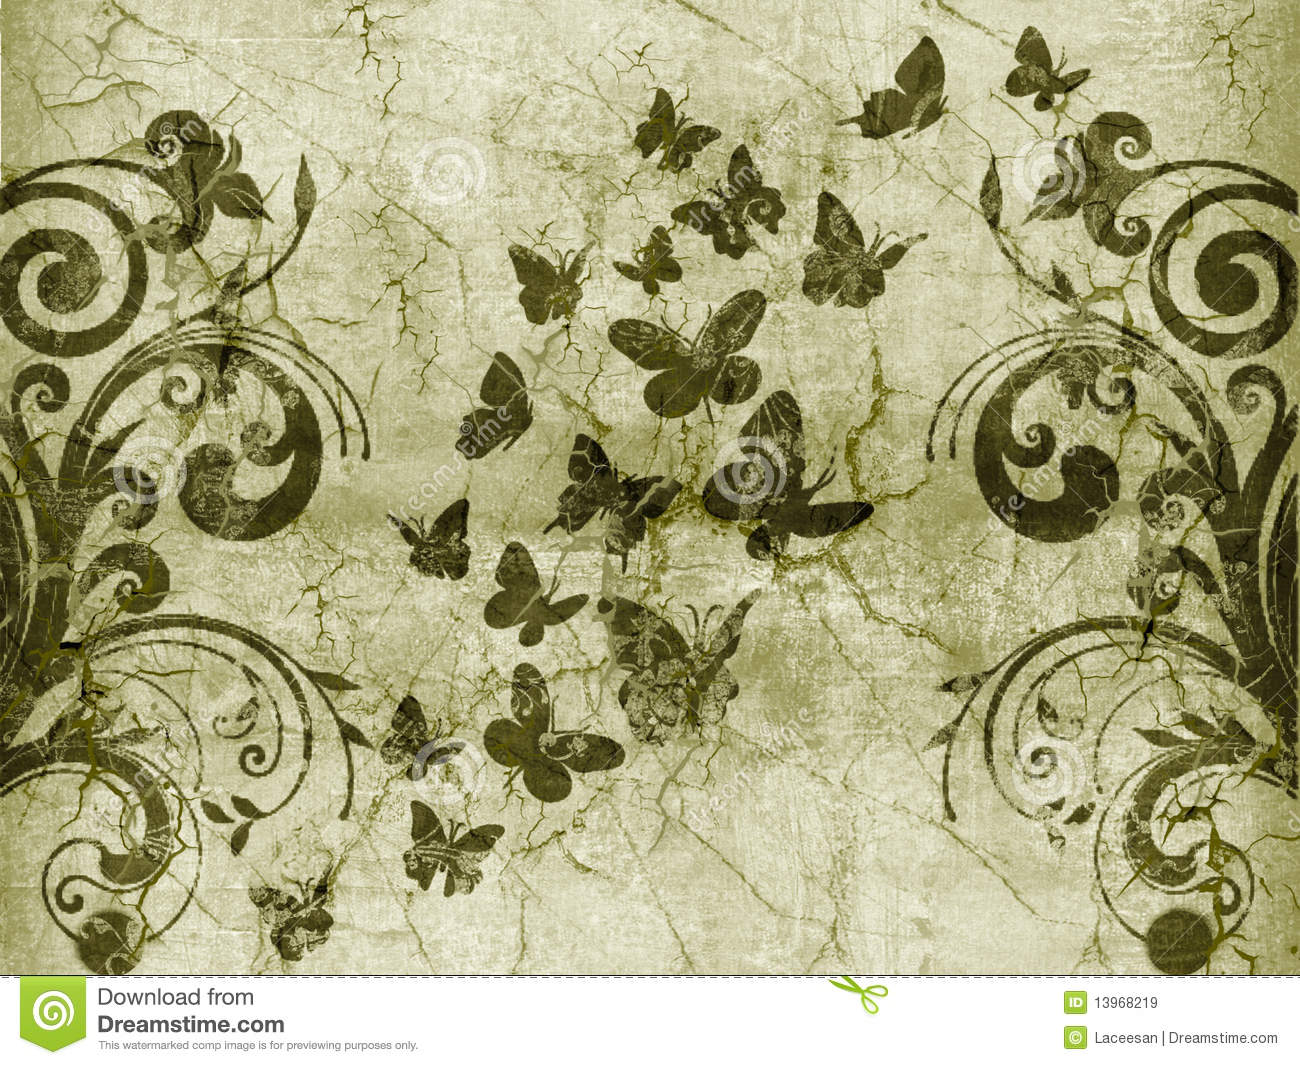 Butterfly vintage style royalty free stock images image 13968219 - Vintage style images ...